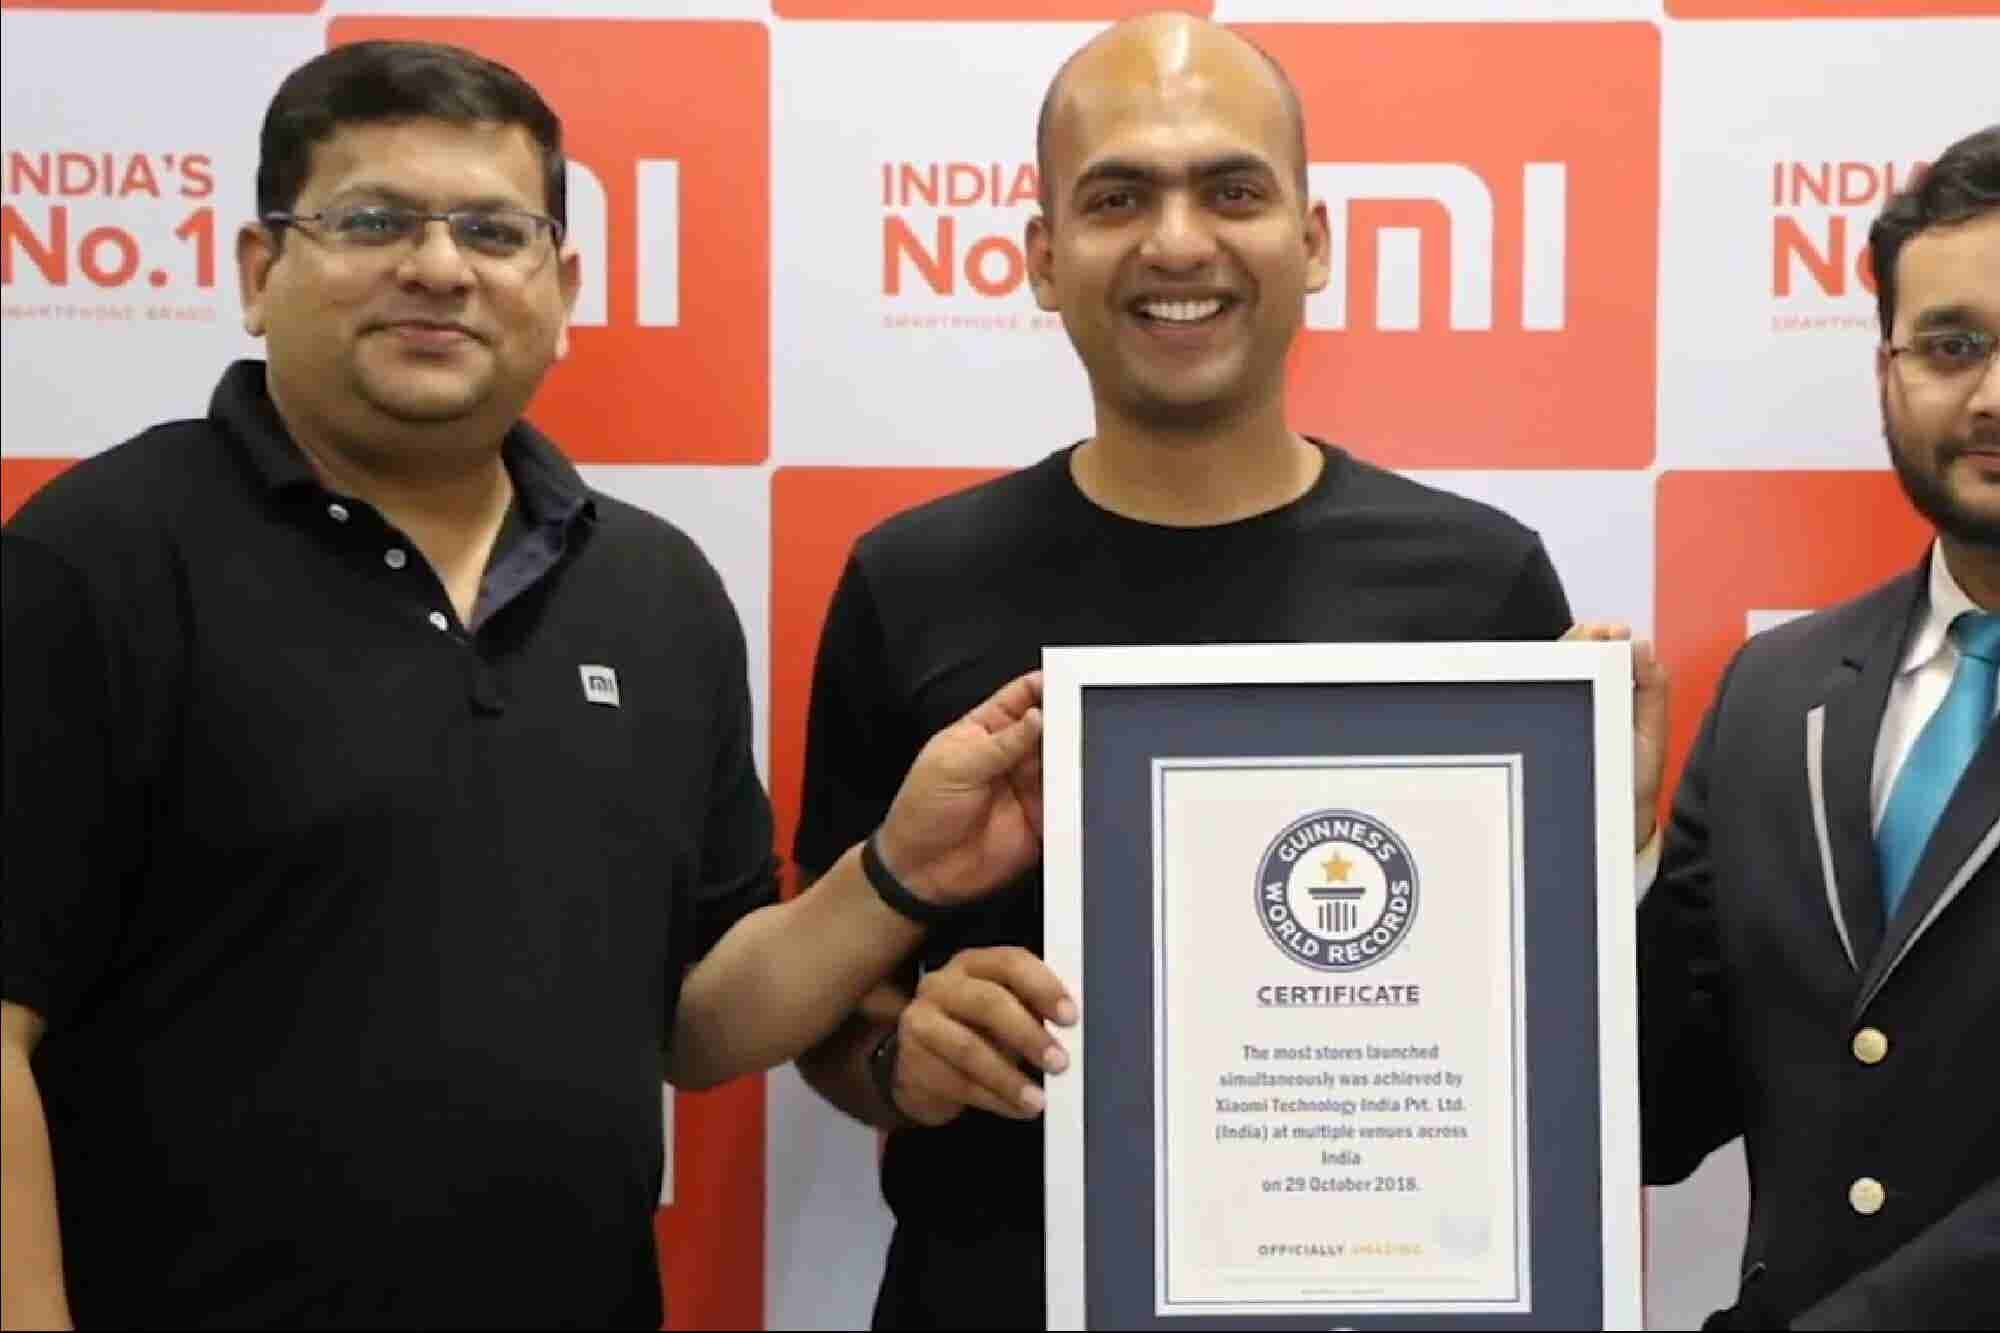 Week Wrap Up: From Xiaomi's World Record to Week's Major Investments